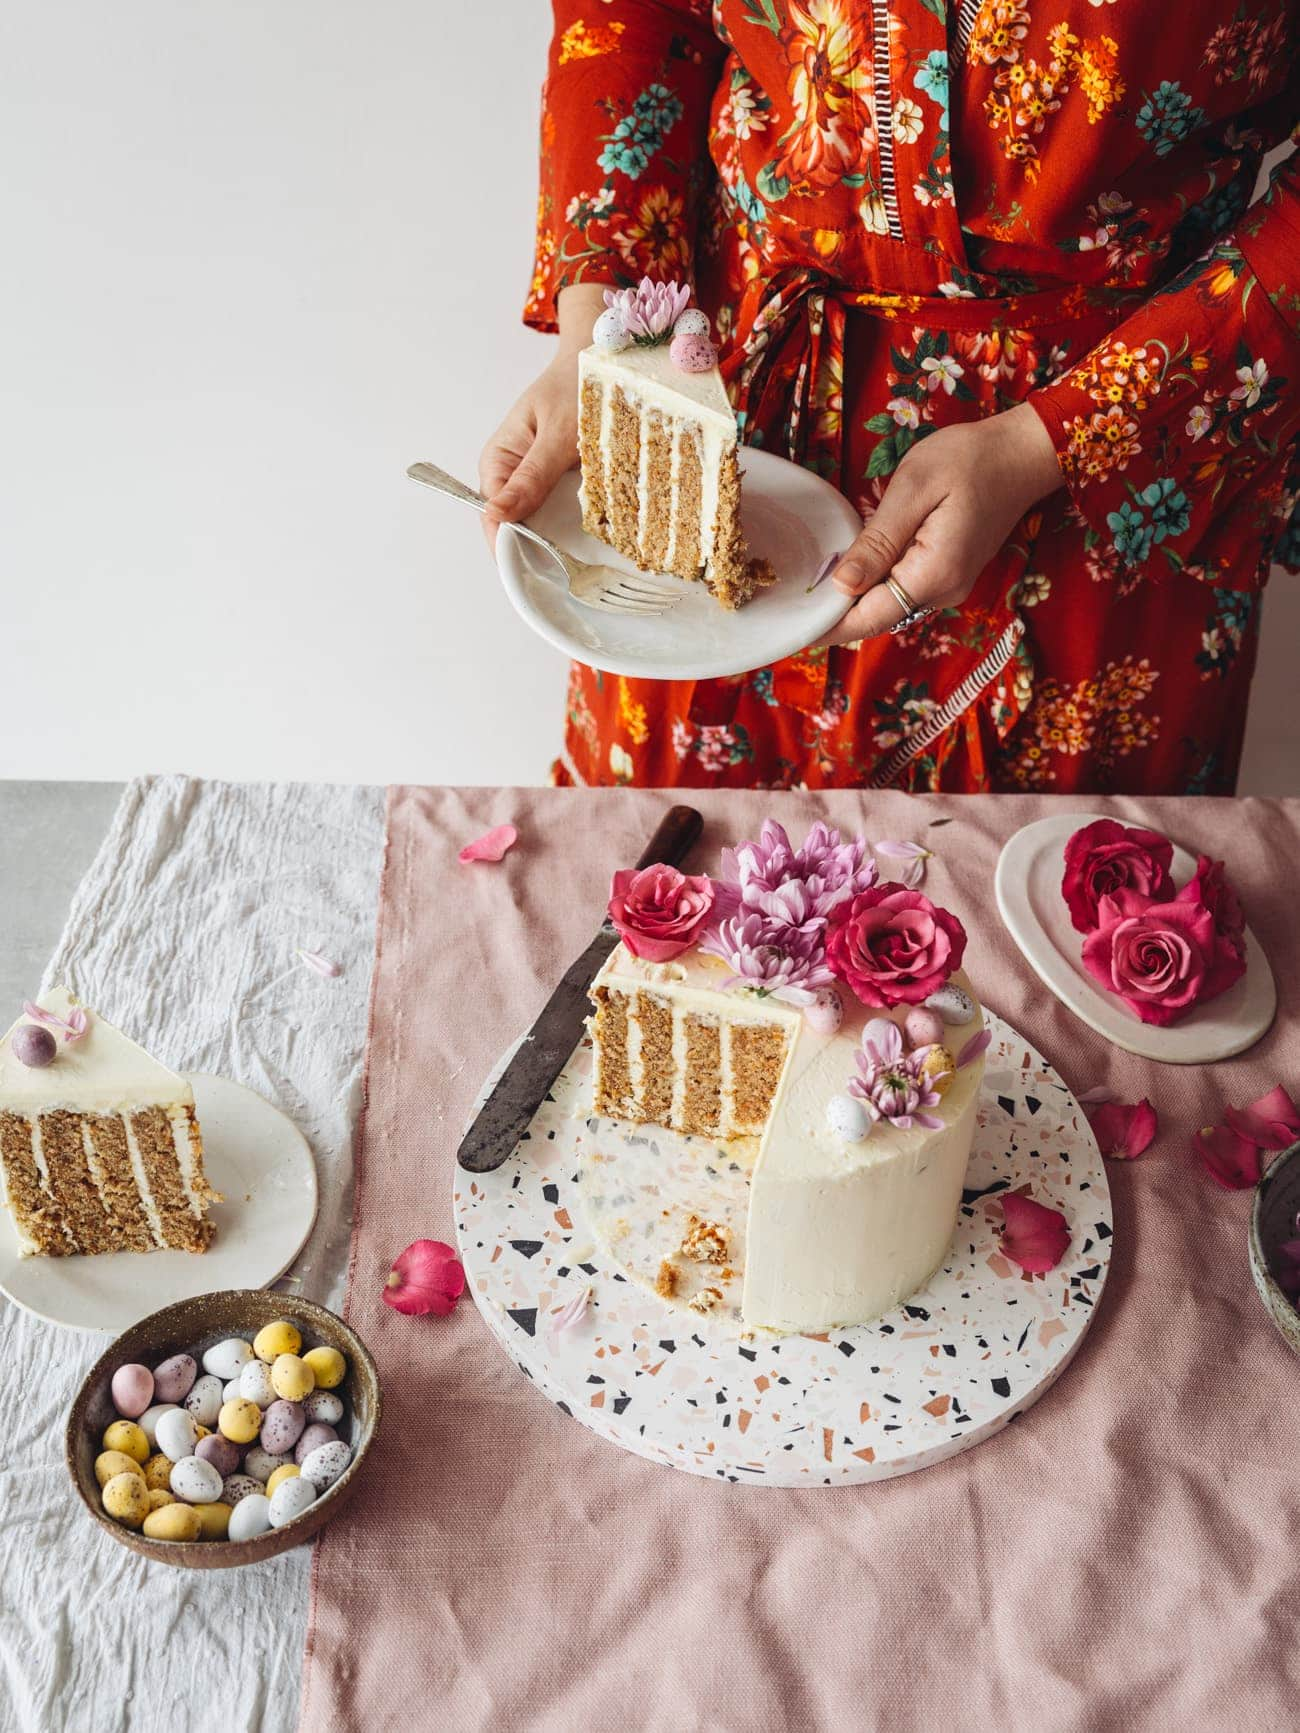 Holding a slice of Vertical Layer Carrot Cake with vanilla Swiss Meringue Buttercream by Izy Hossack